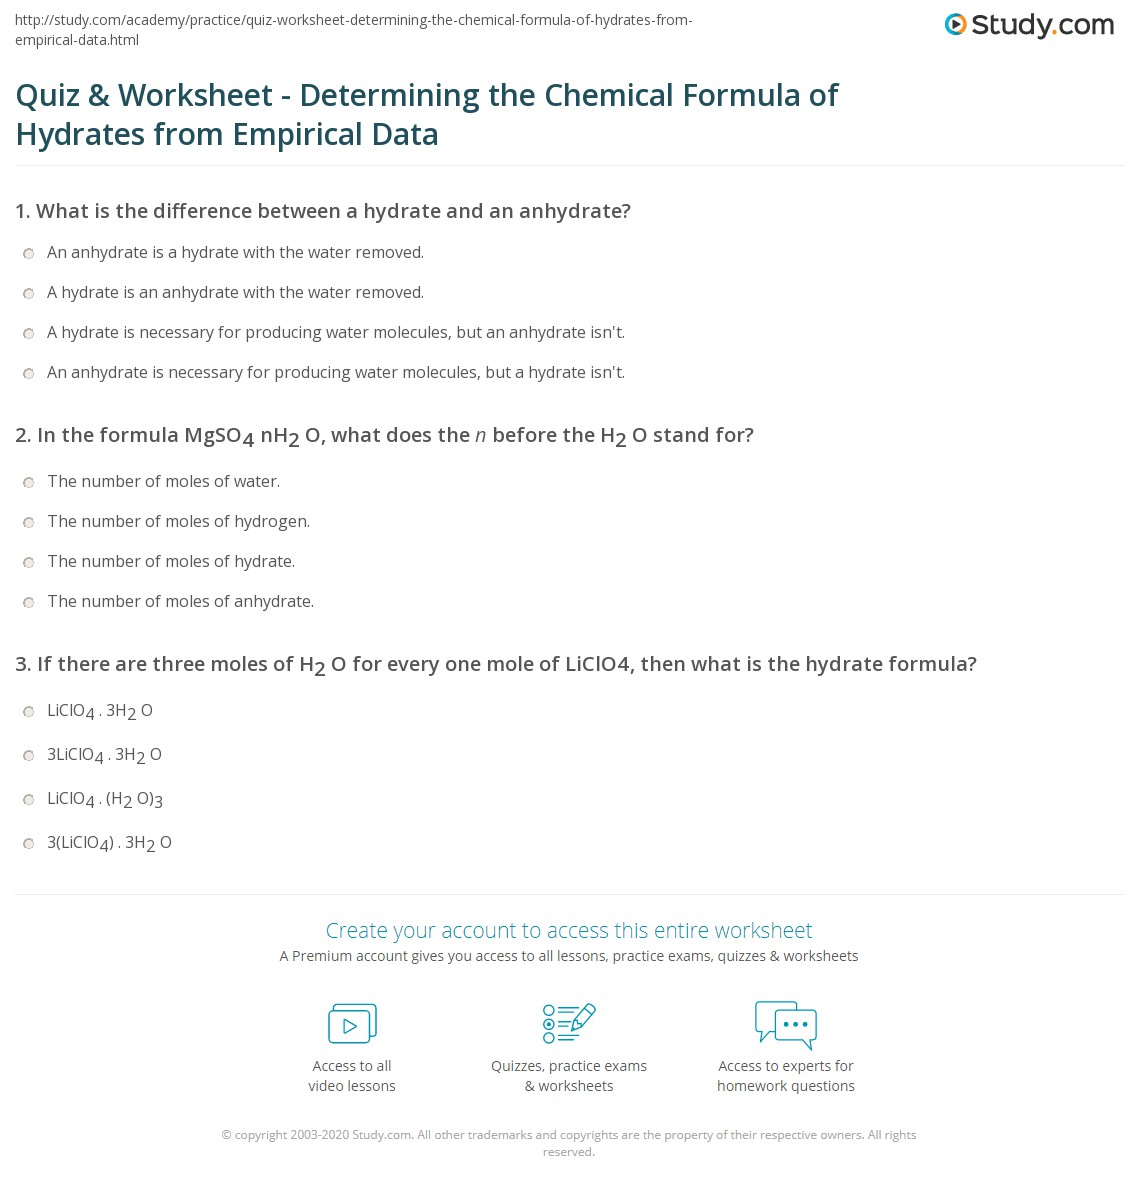 Print Hydrates: Determining the Chemical Formula From Empirical Data Worksheet